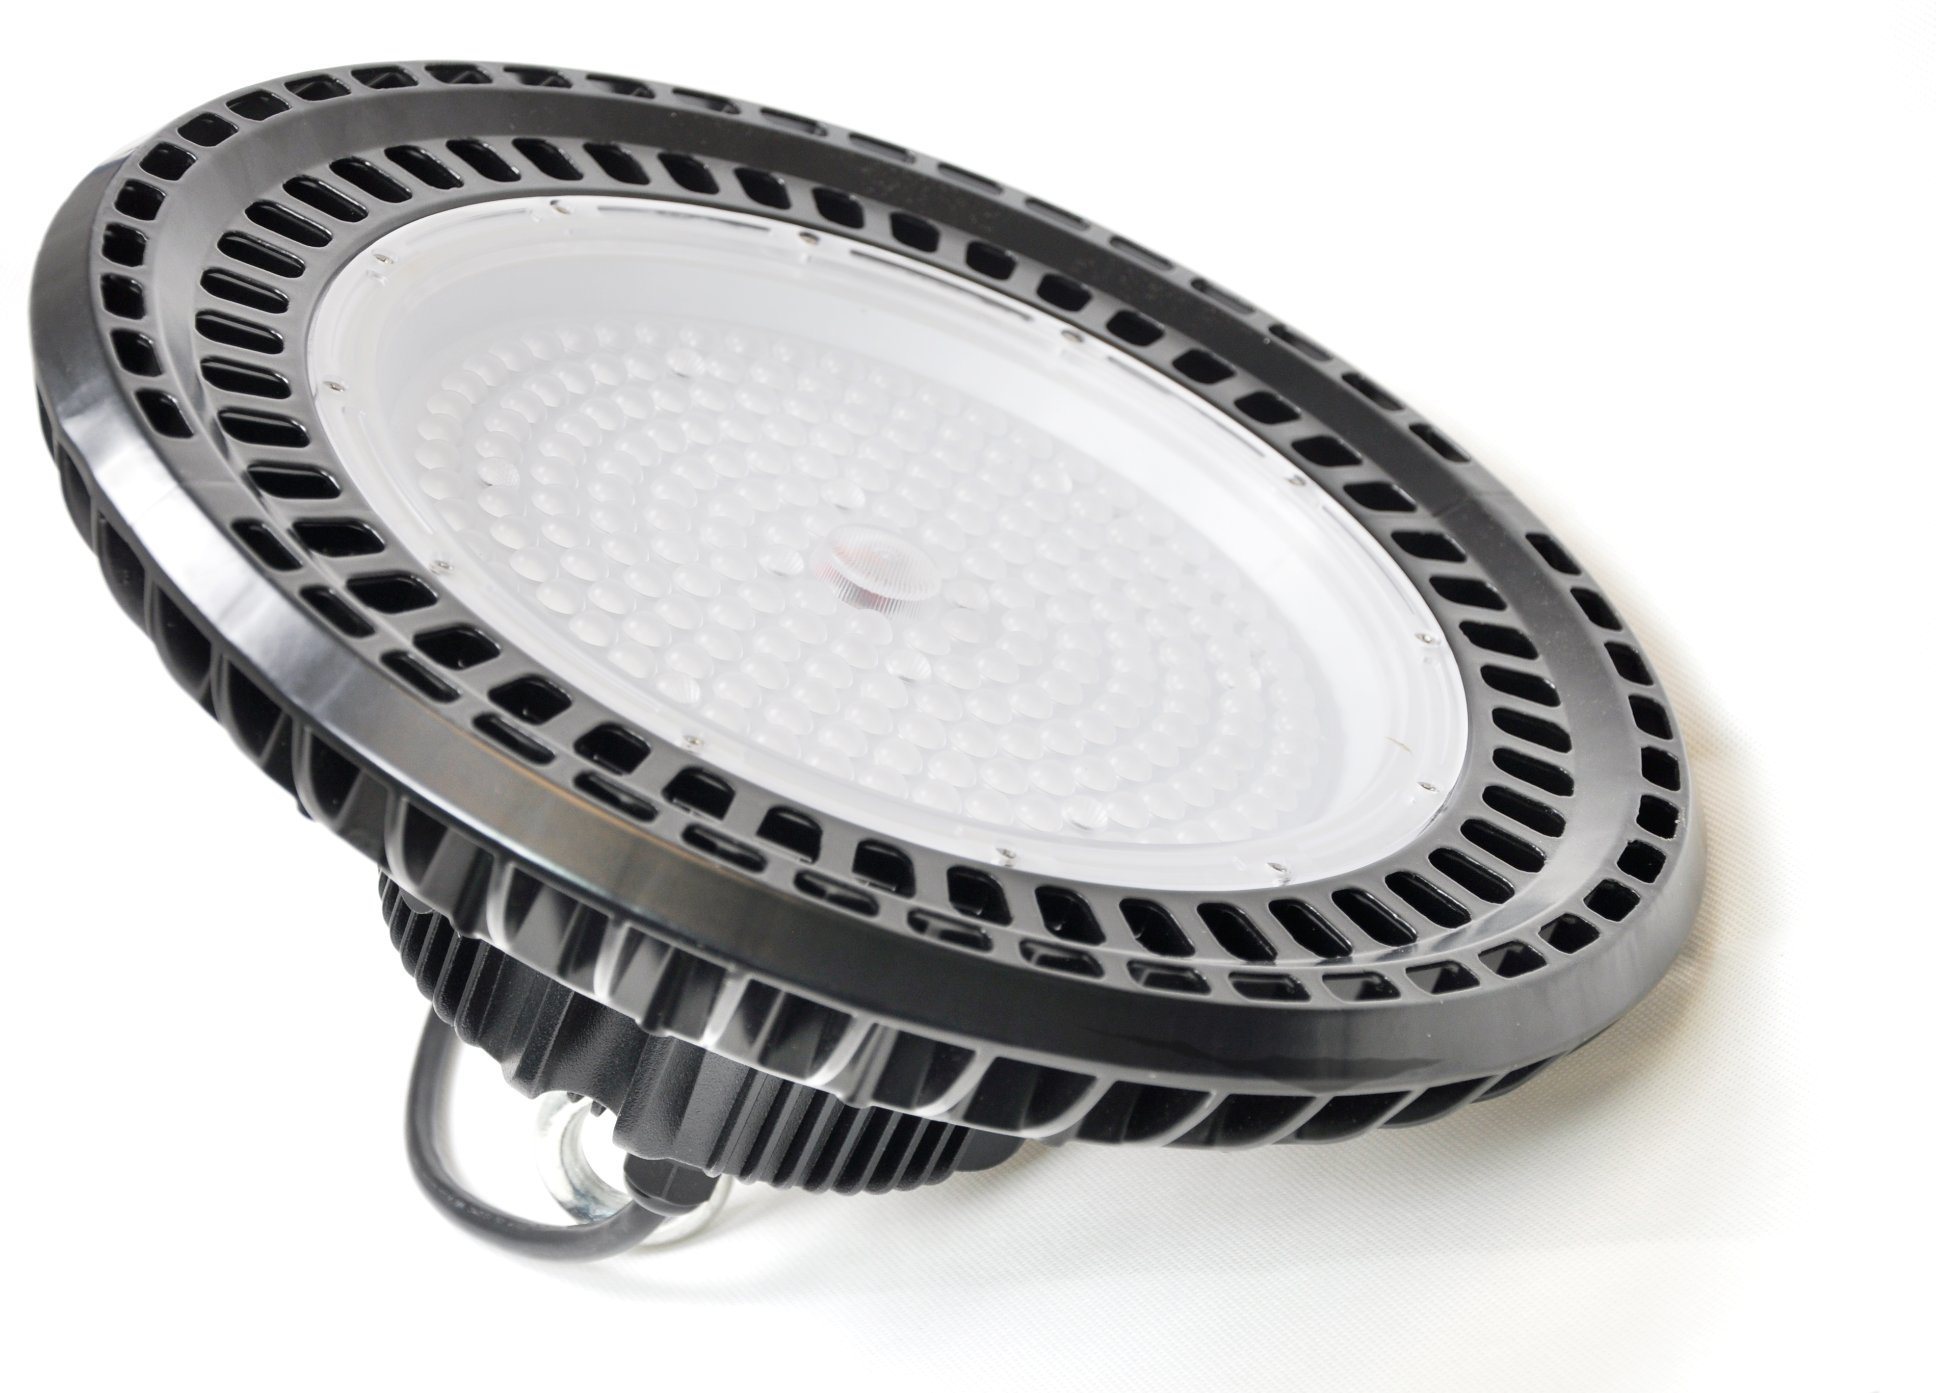 UFO Philips LED High Bay Light Lamp 100W/150W/200W/250W